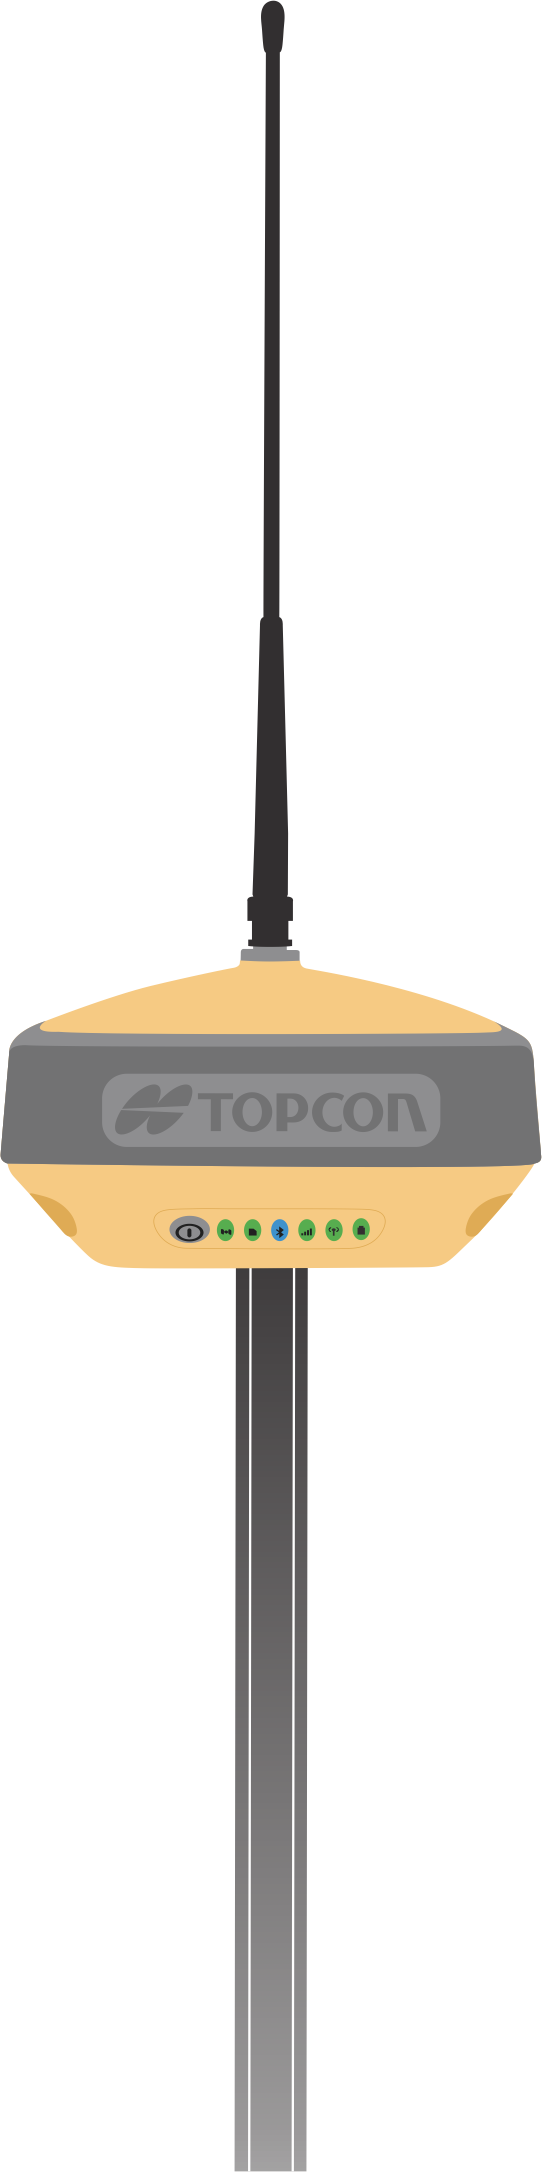 TILT — Topcon Integrated Leveling Technology